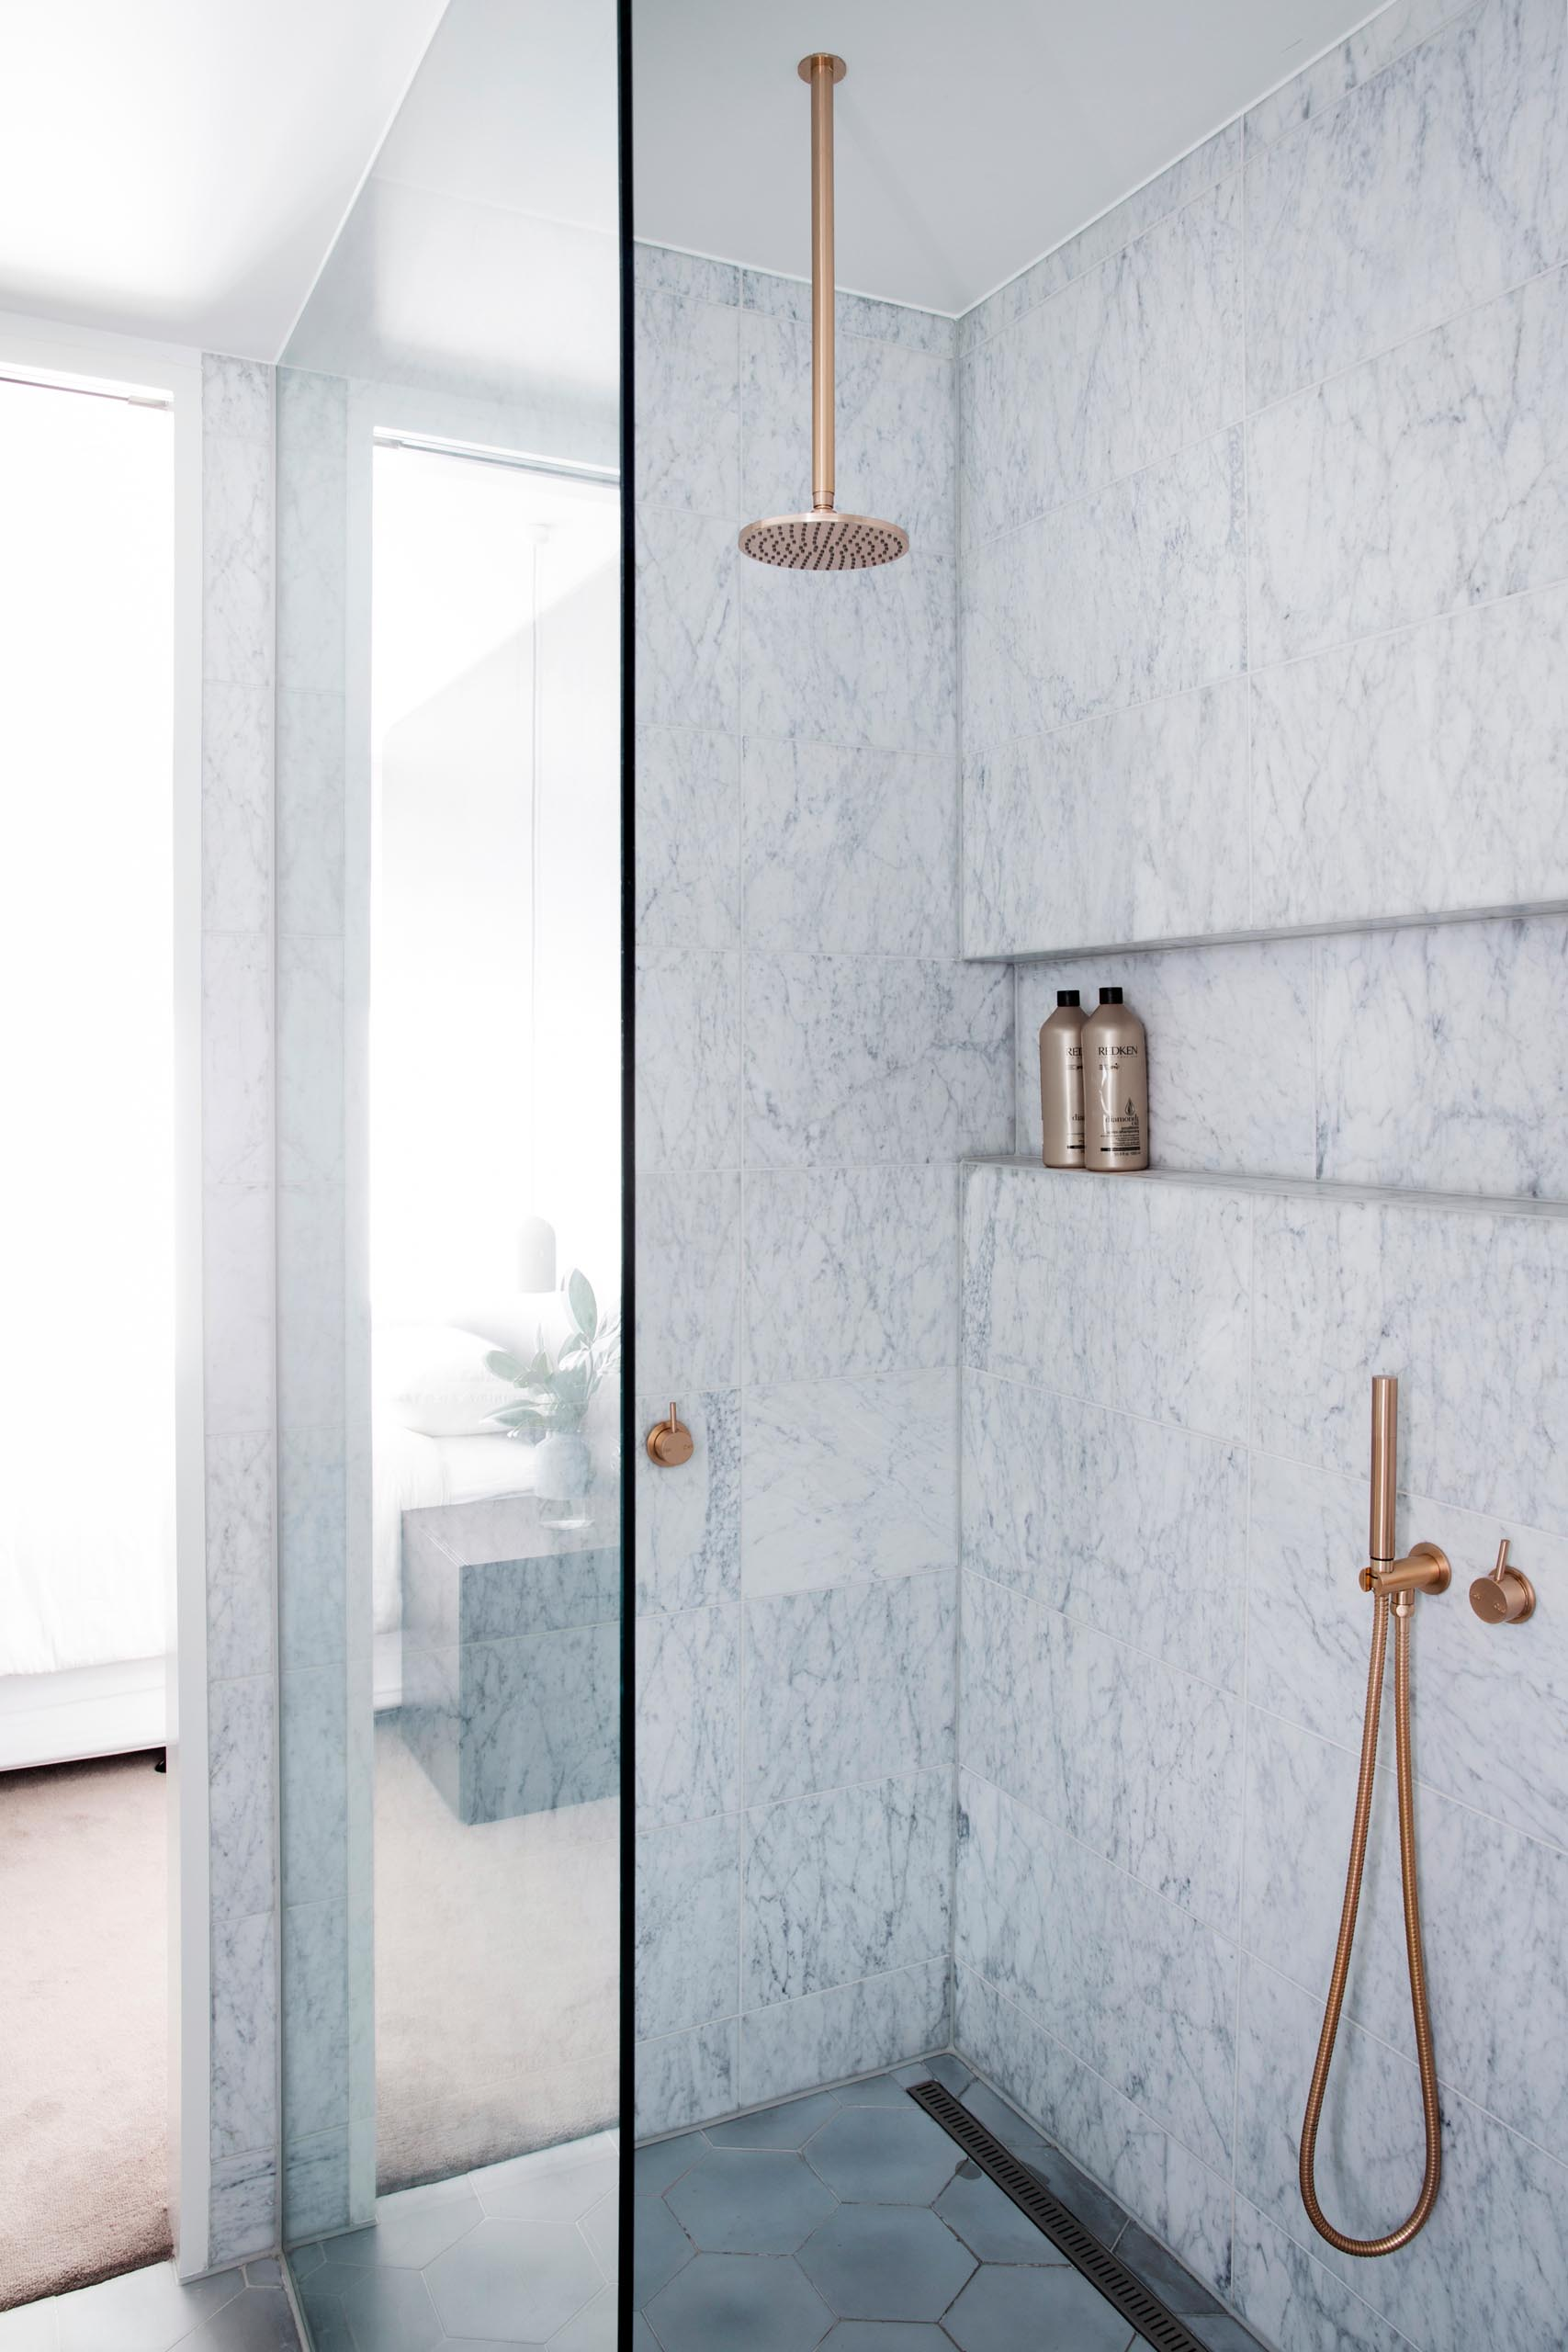 A modern gray marble shower with a rainfall shower head, brushed rose gold hardware, and a built-in shower niche.